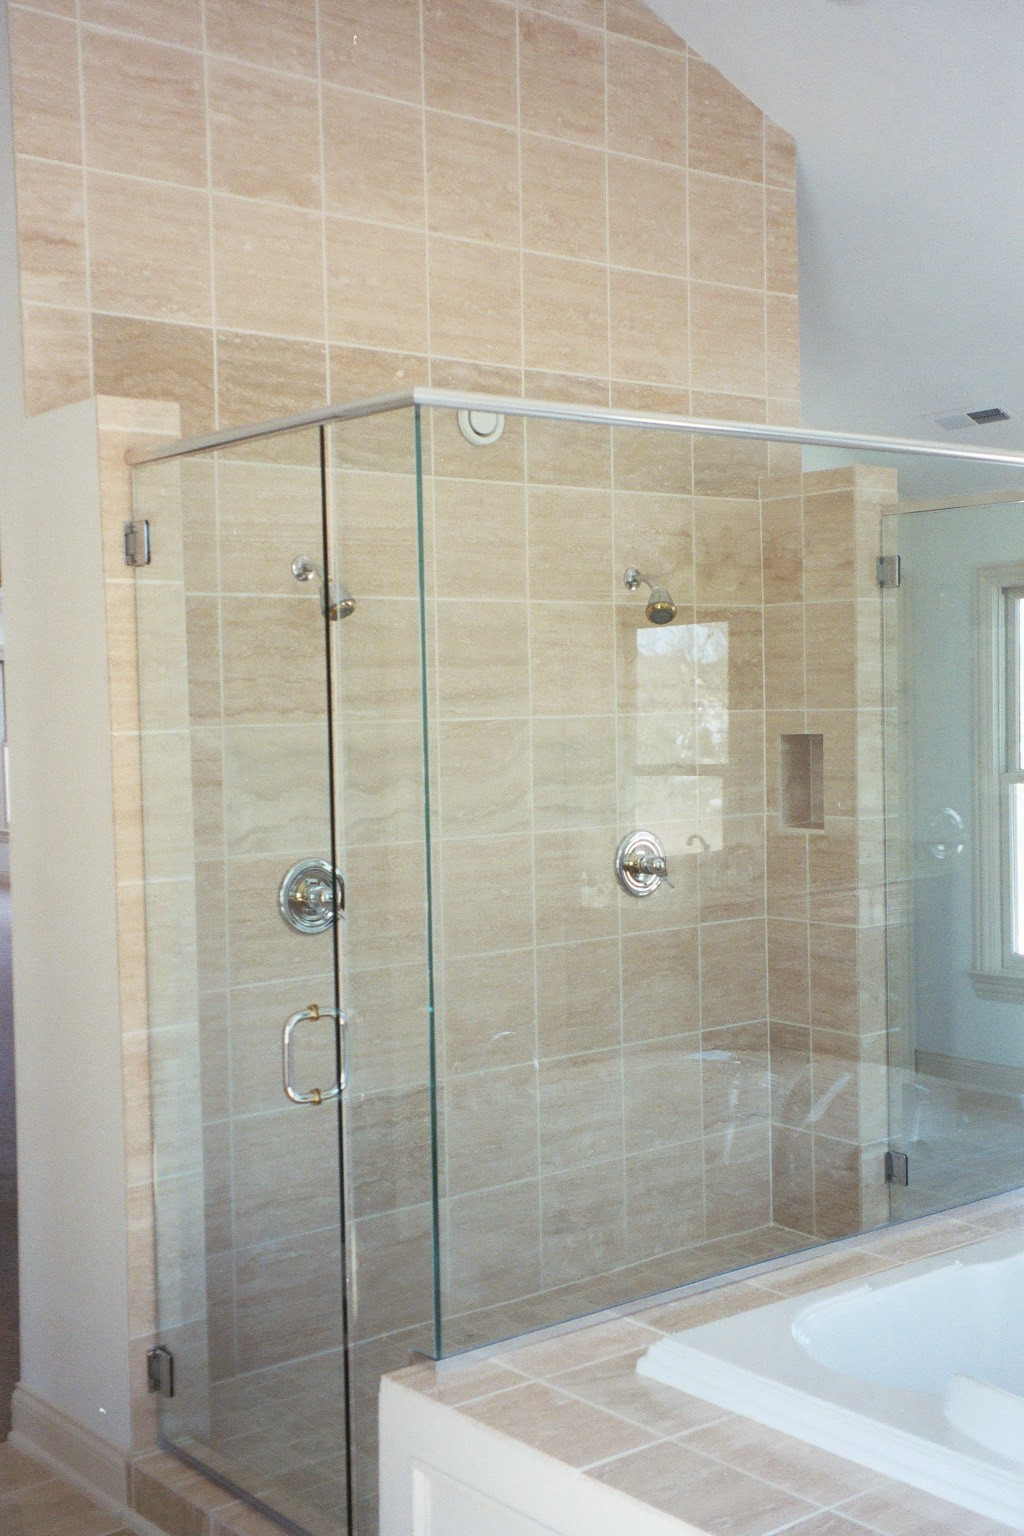 Backsplash Picture Ideas: Custom Shower and Tub Deck Stone ...